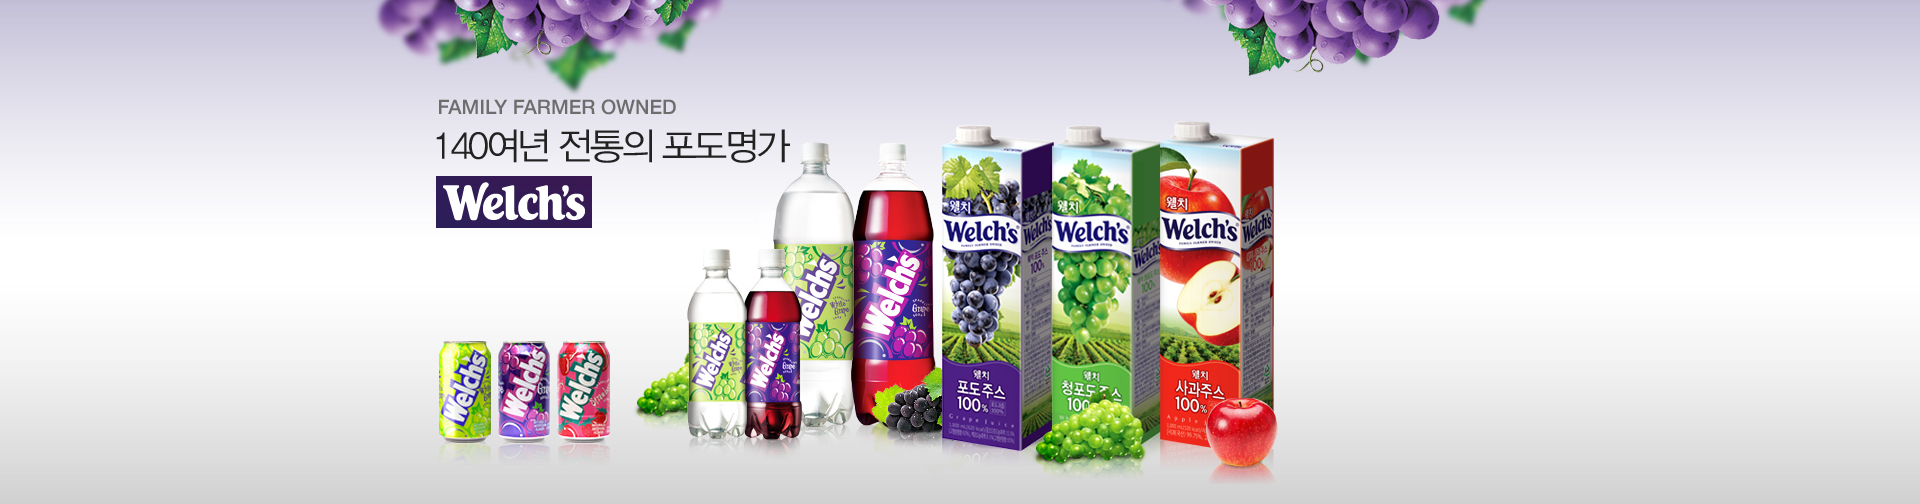 FAMILY FARMER OWNED